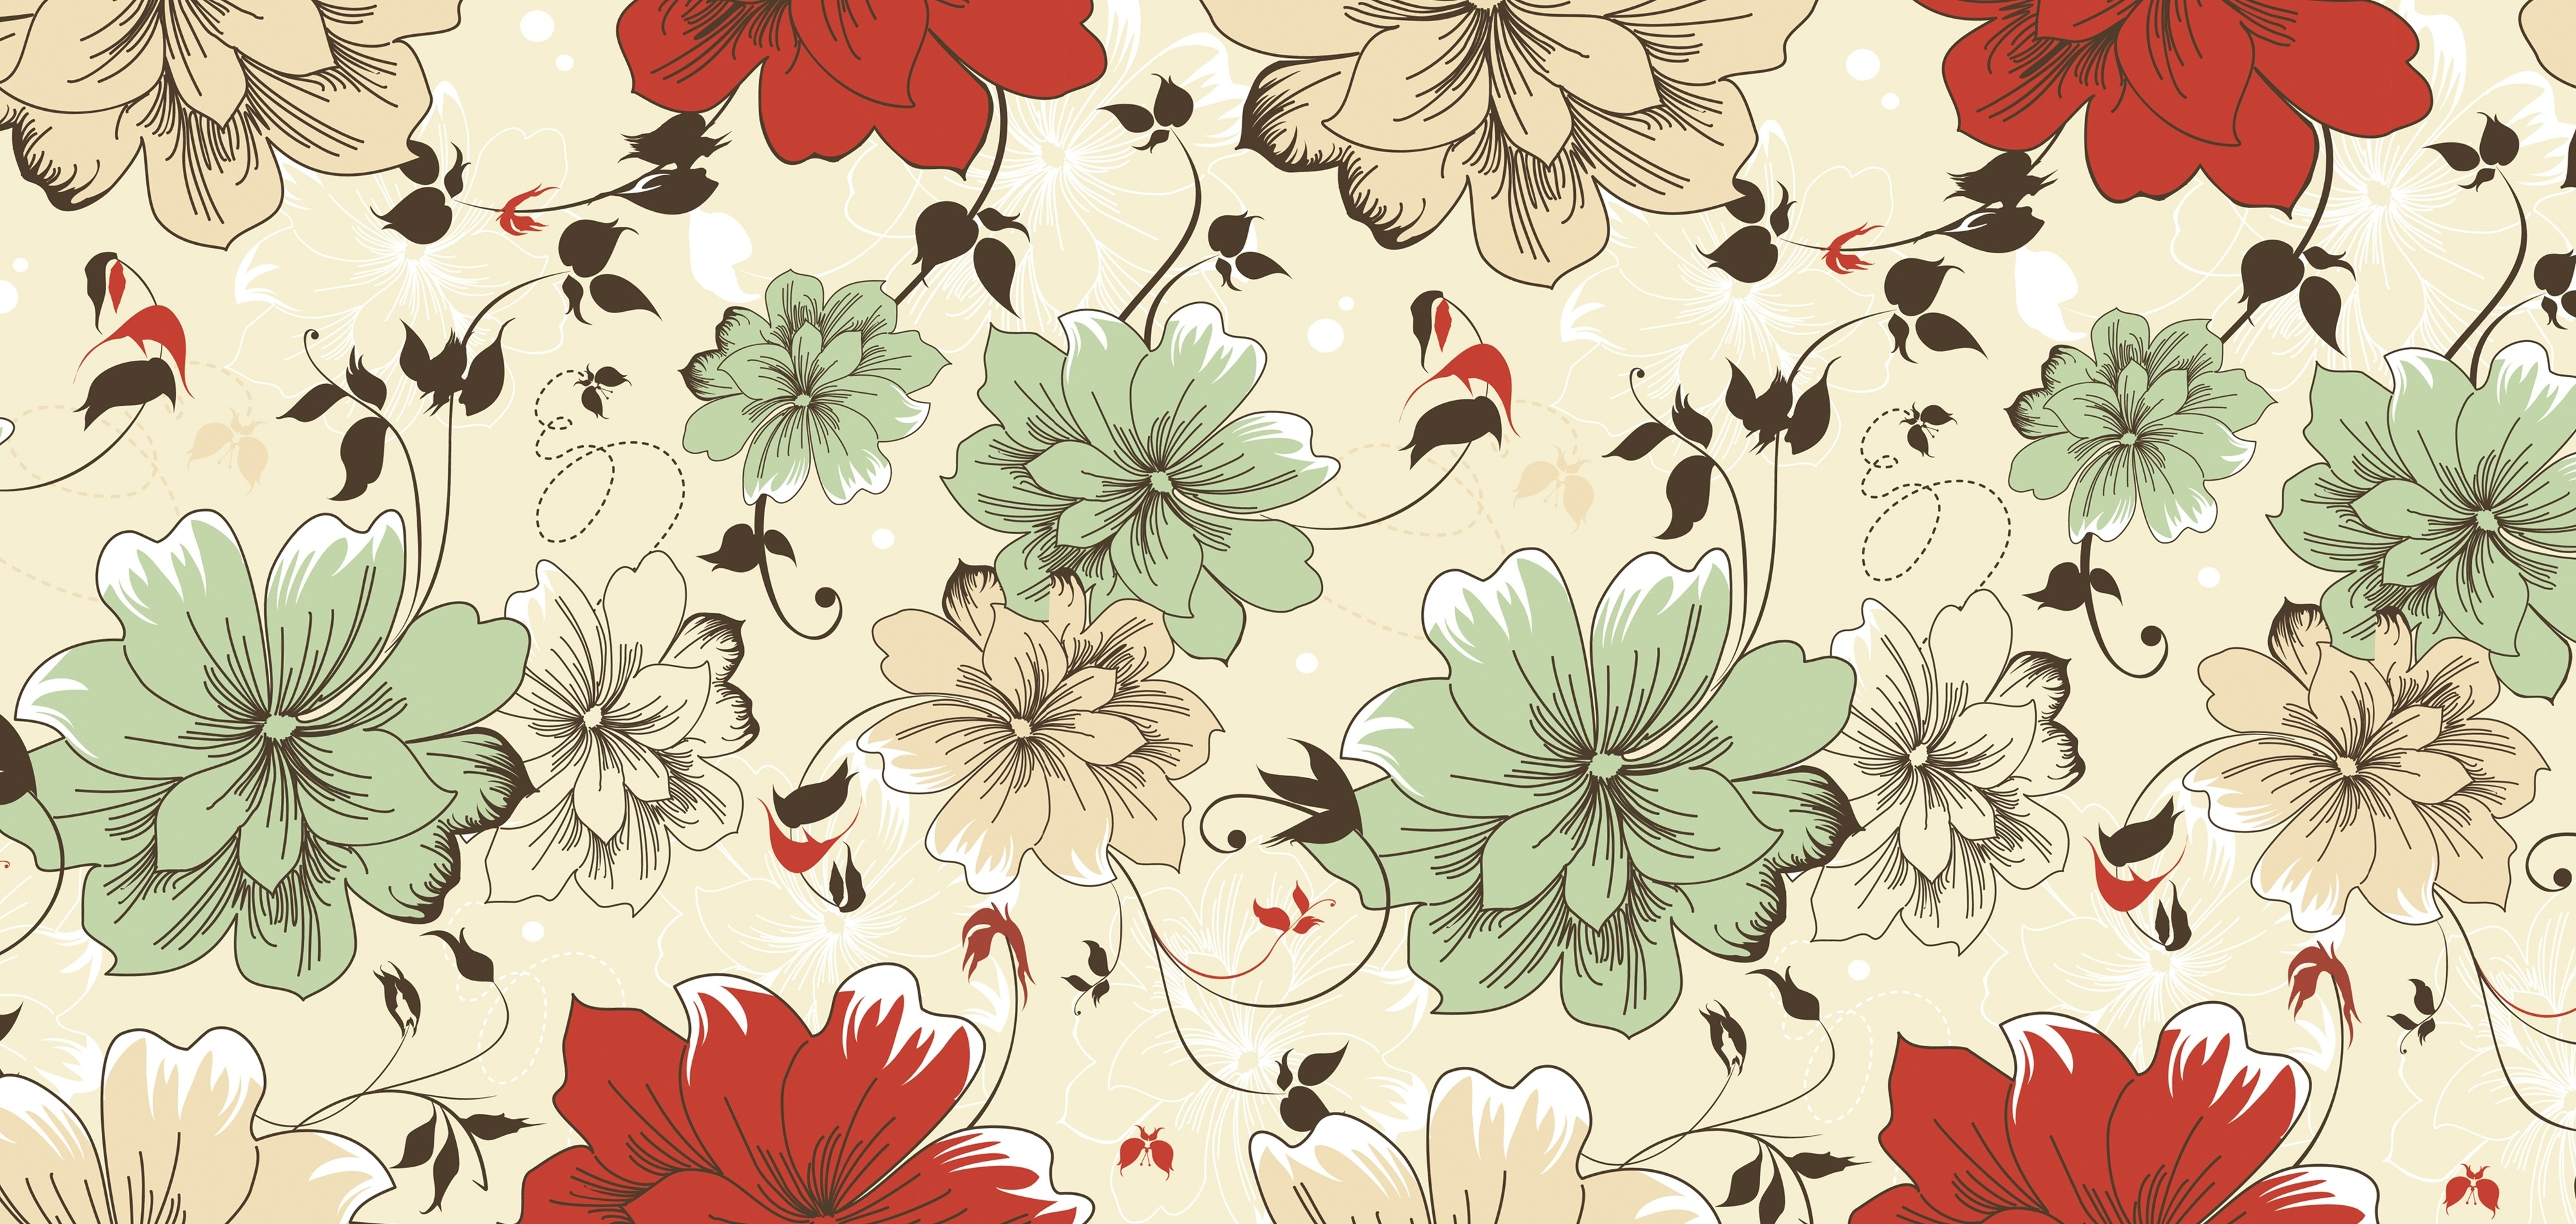 Flower Pattern Desktop Wallpaper HD wallpaper background 4000x1900